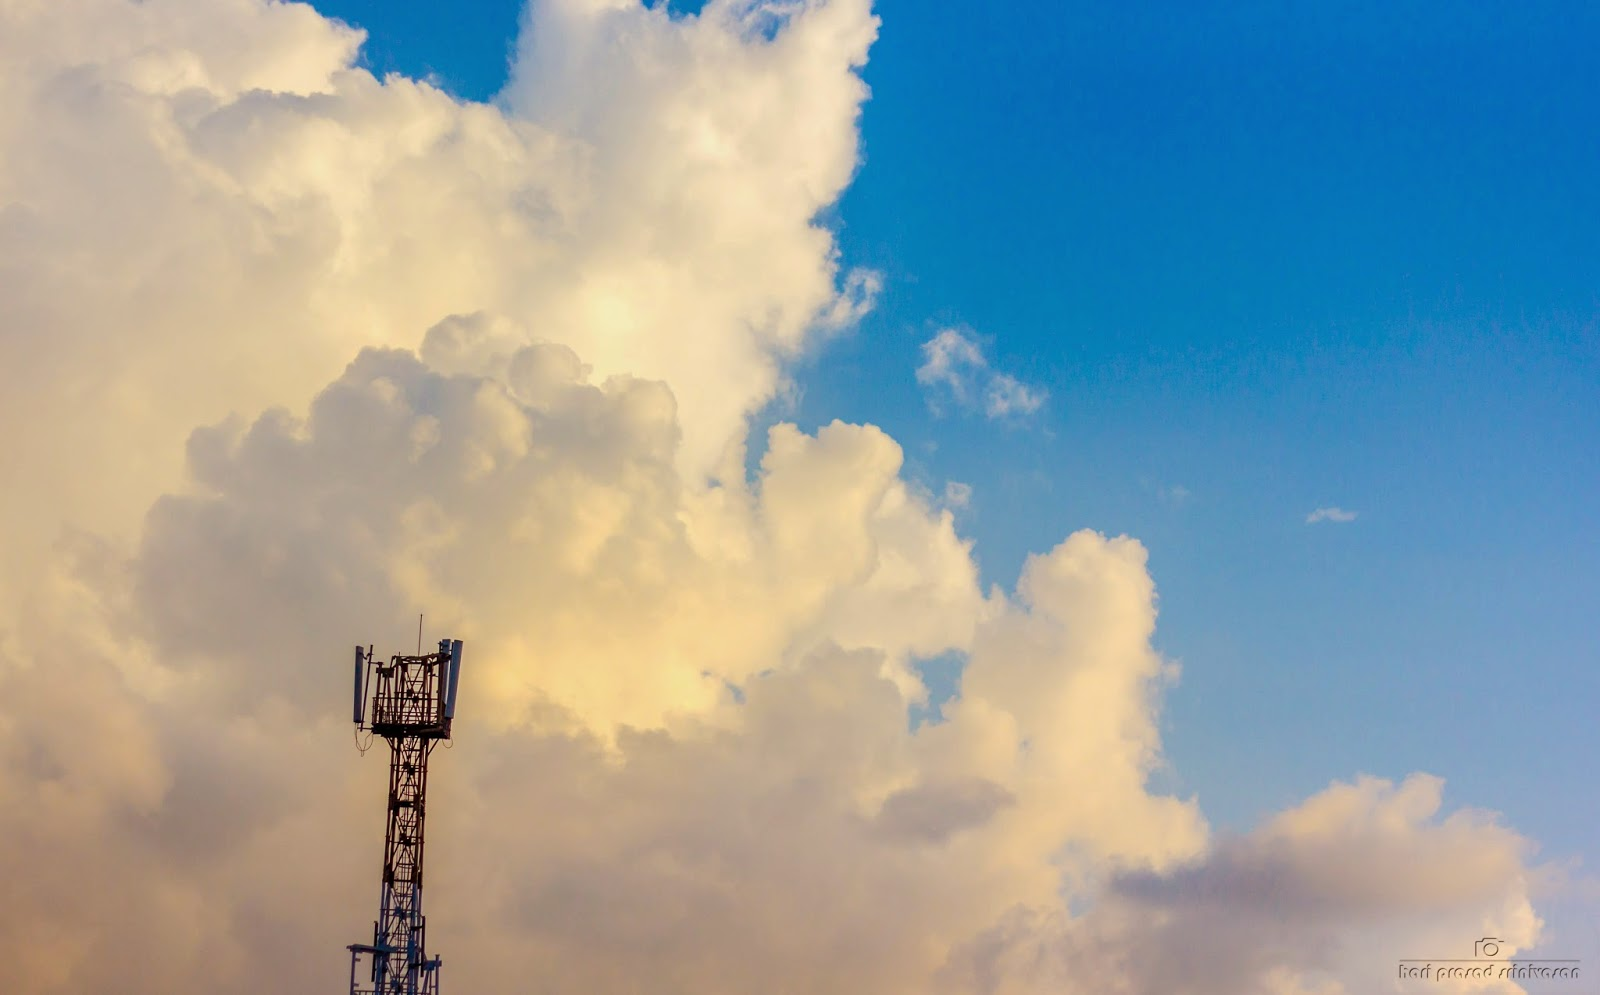 Cloud formation with cell phone tower in the picture